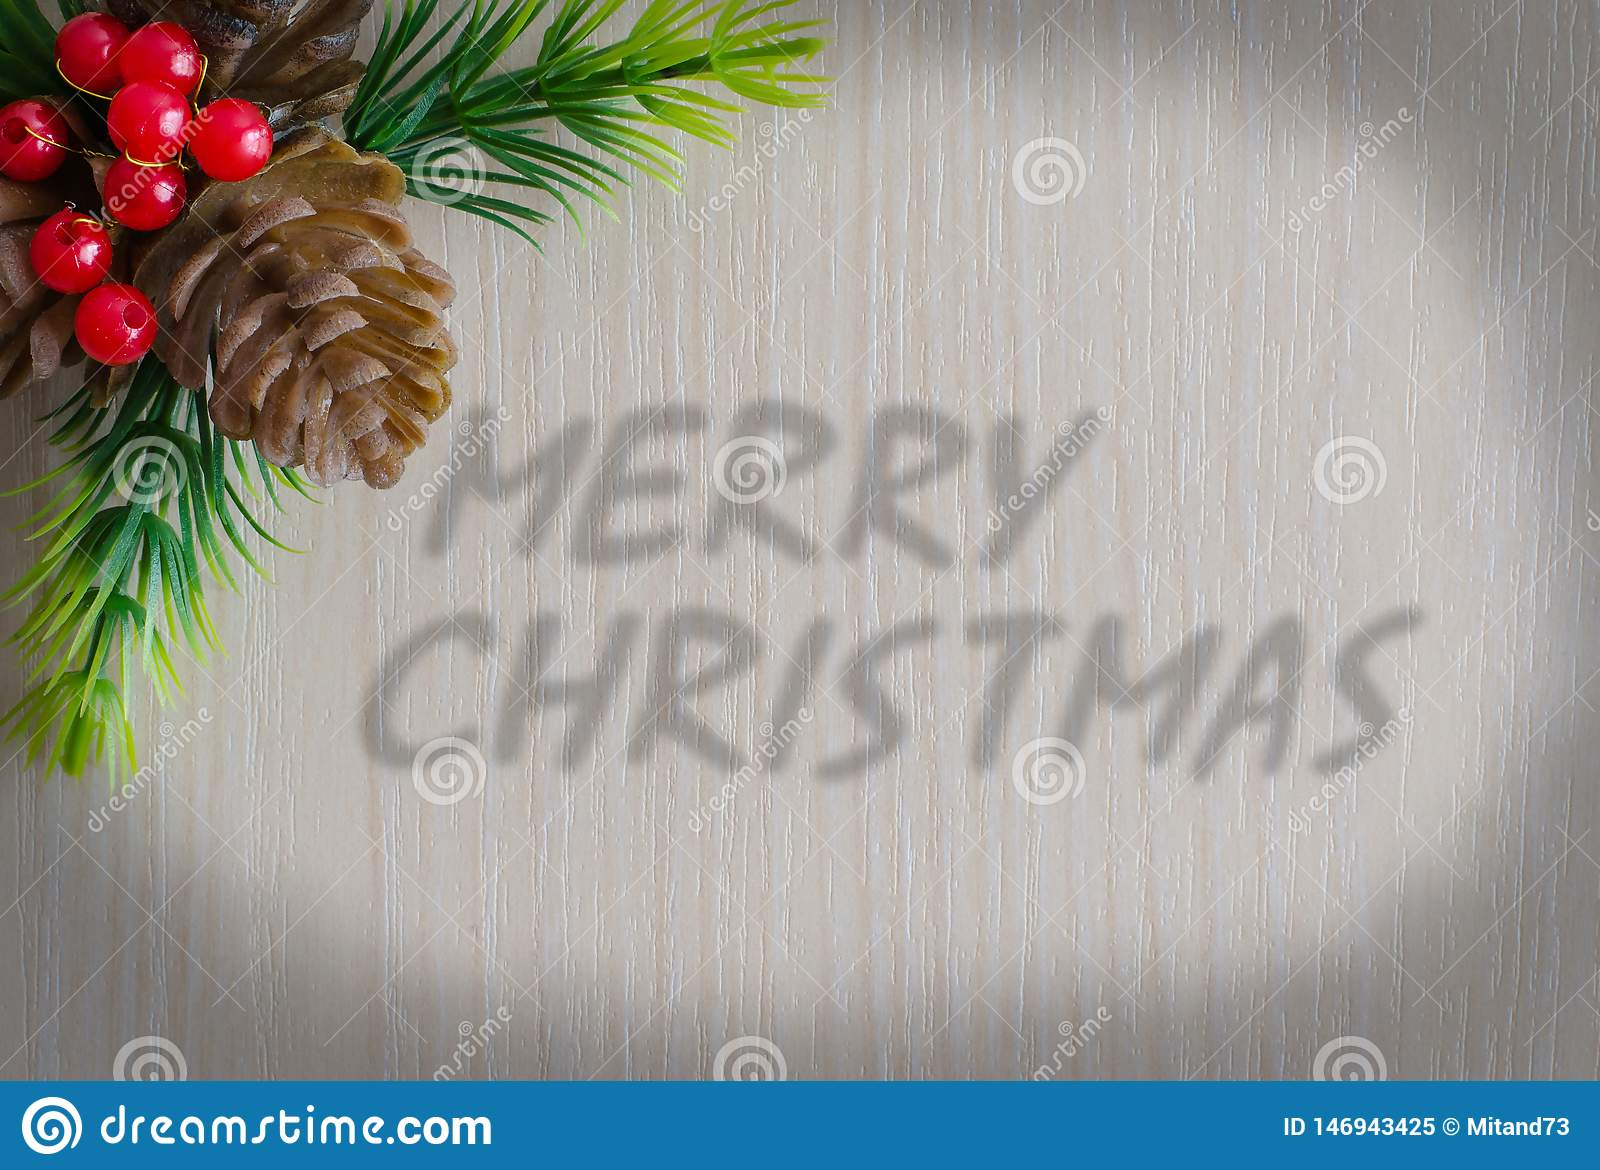 The Inscription Merry Christmas. Background - wood texture